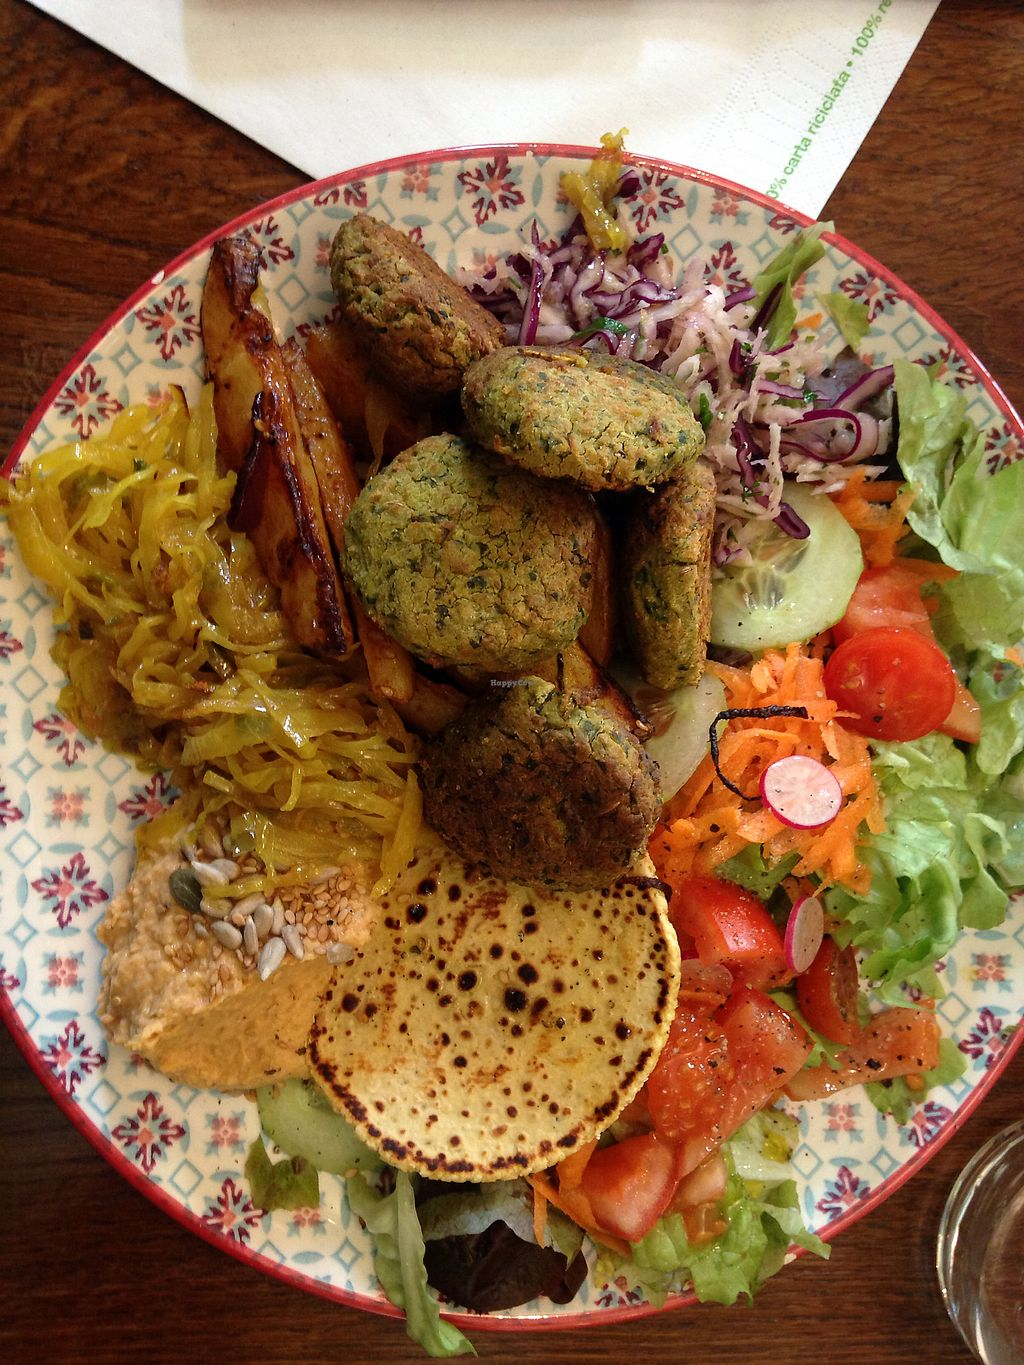 """Photo of Olea Mediterranean Cuisine  by <a href=""""/members/profile/charlot669"""">charlot669</a> <br/>Falafel <br/> March 12, 2018  - <a href='/contact/abuse/image/109716/369892'>Report</a>"""